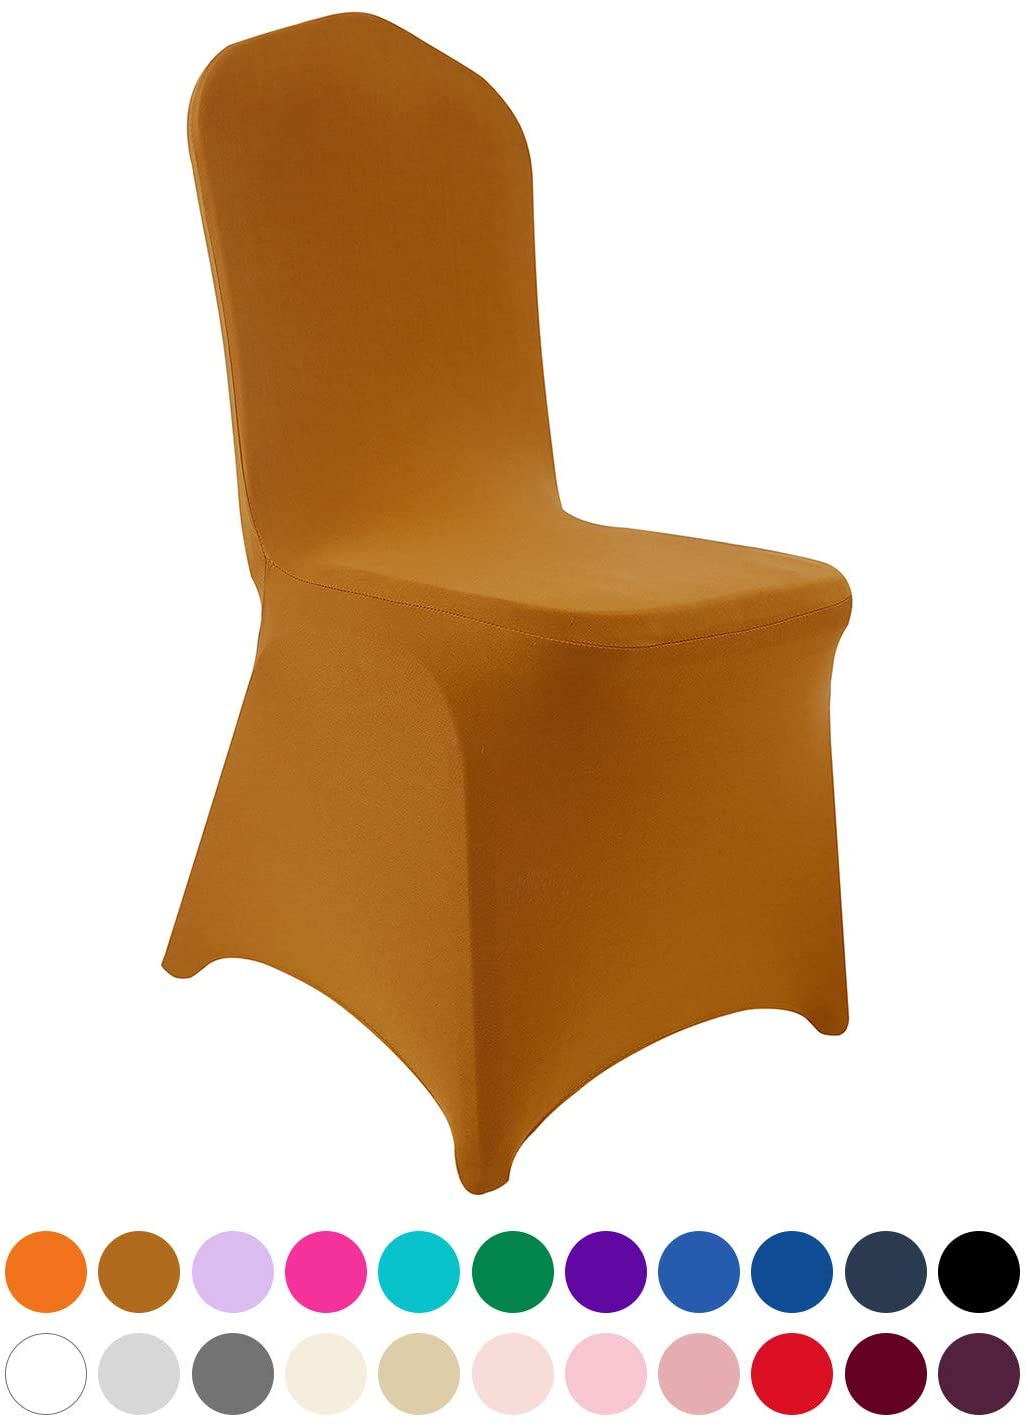 Peomeise 12pcs Stretch Spandex Chair Cover for Wedding Party Dining Banquet Event (Gold, 12)